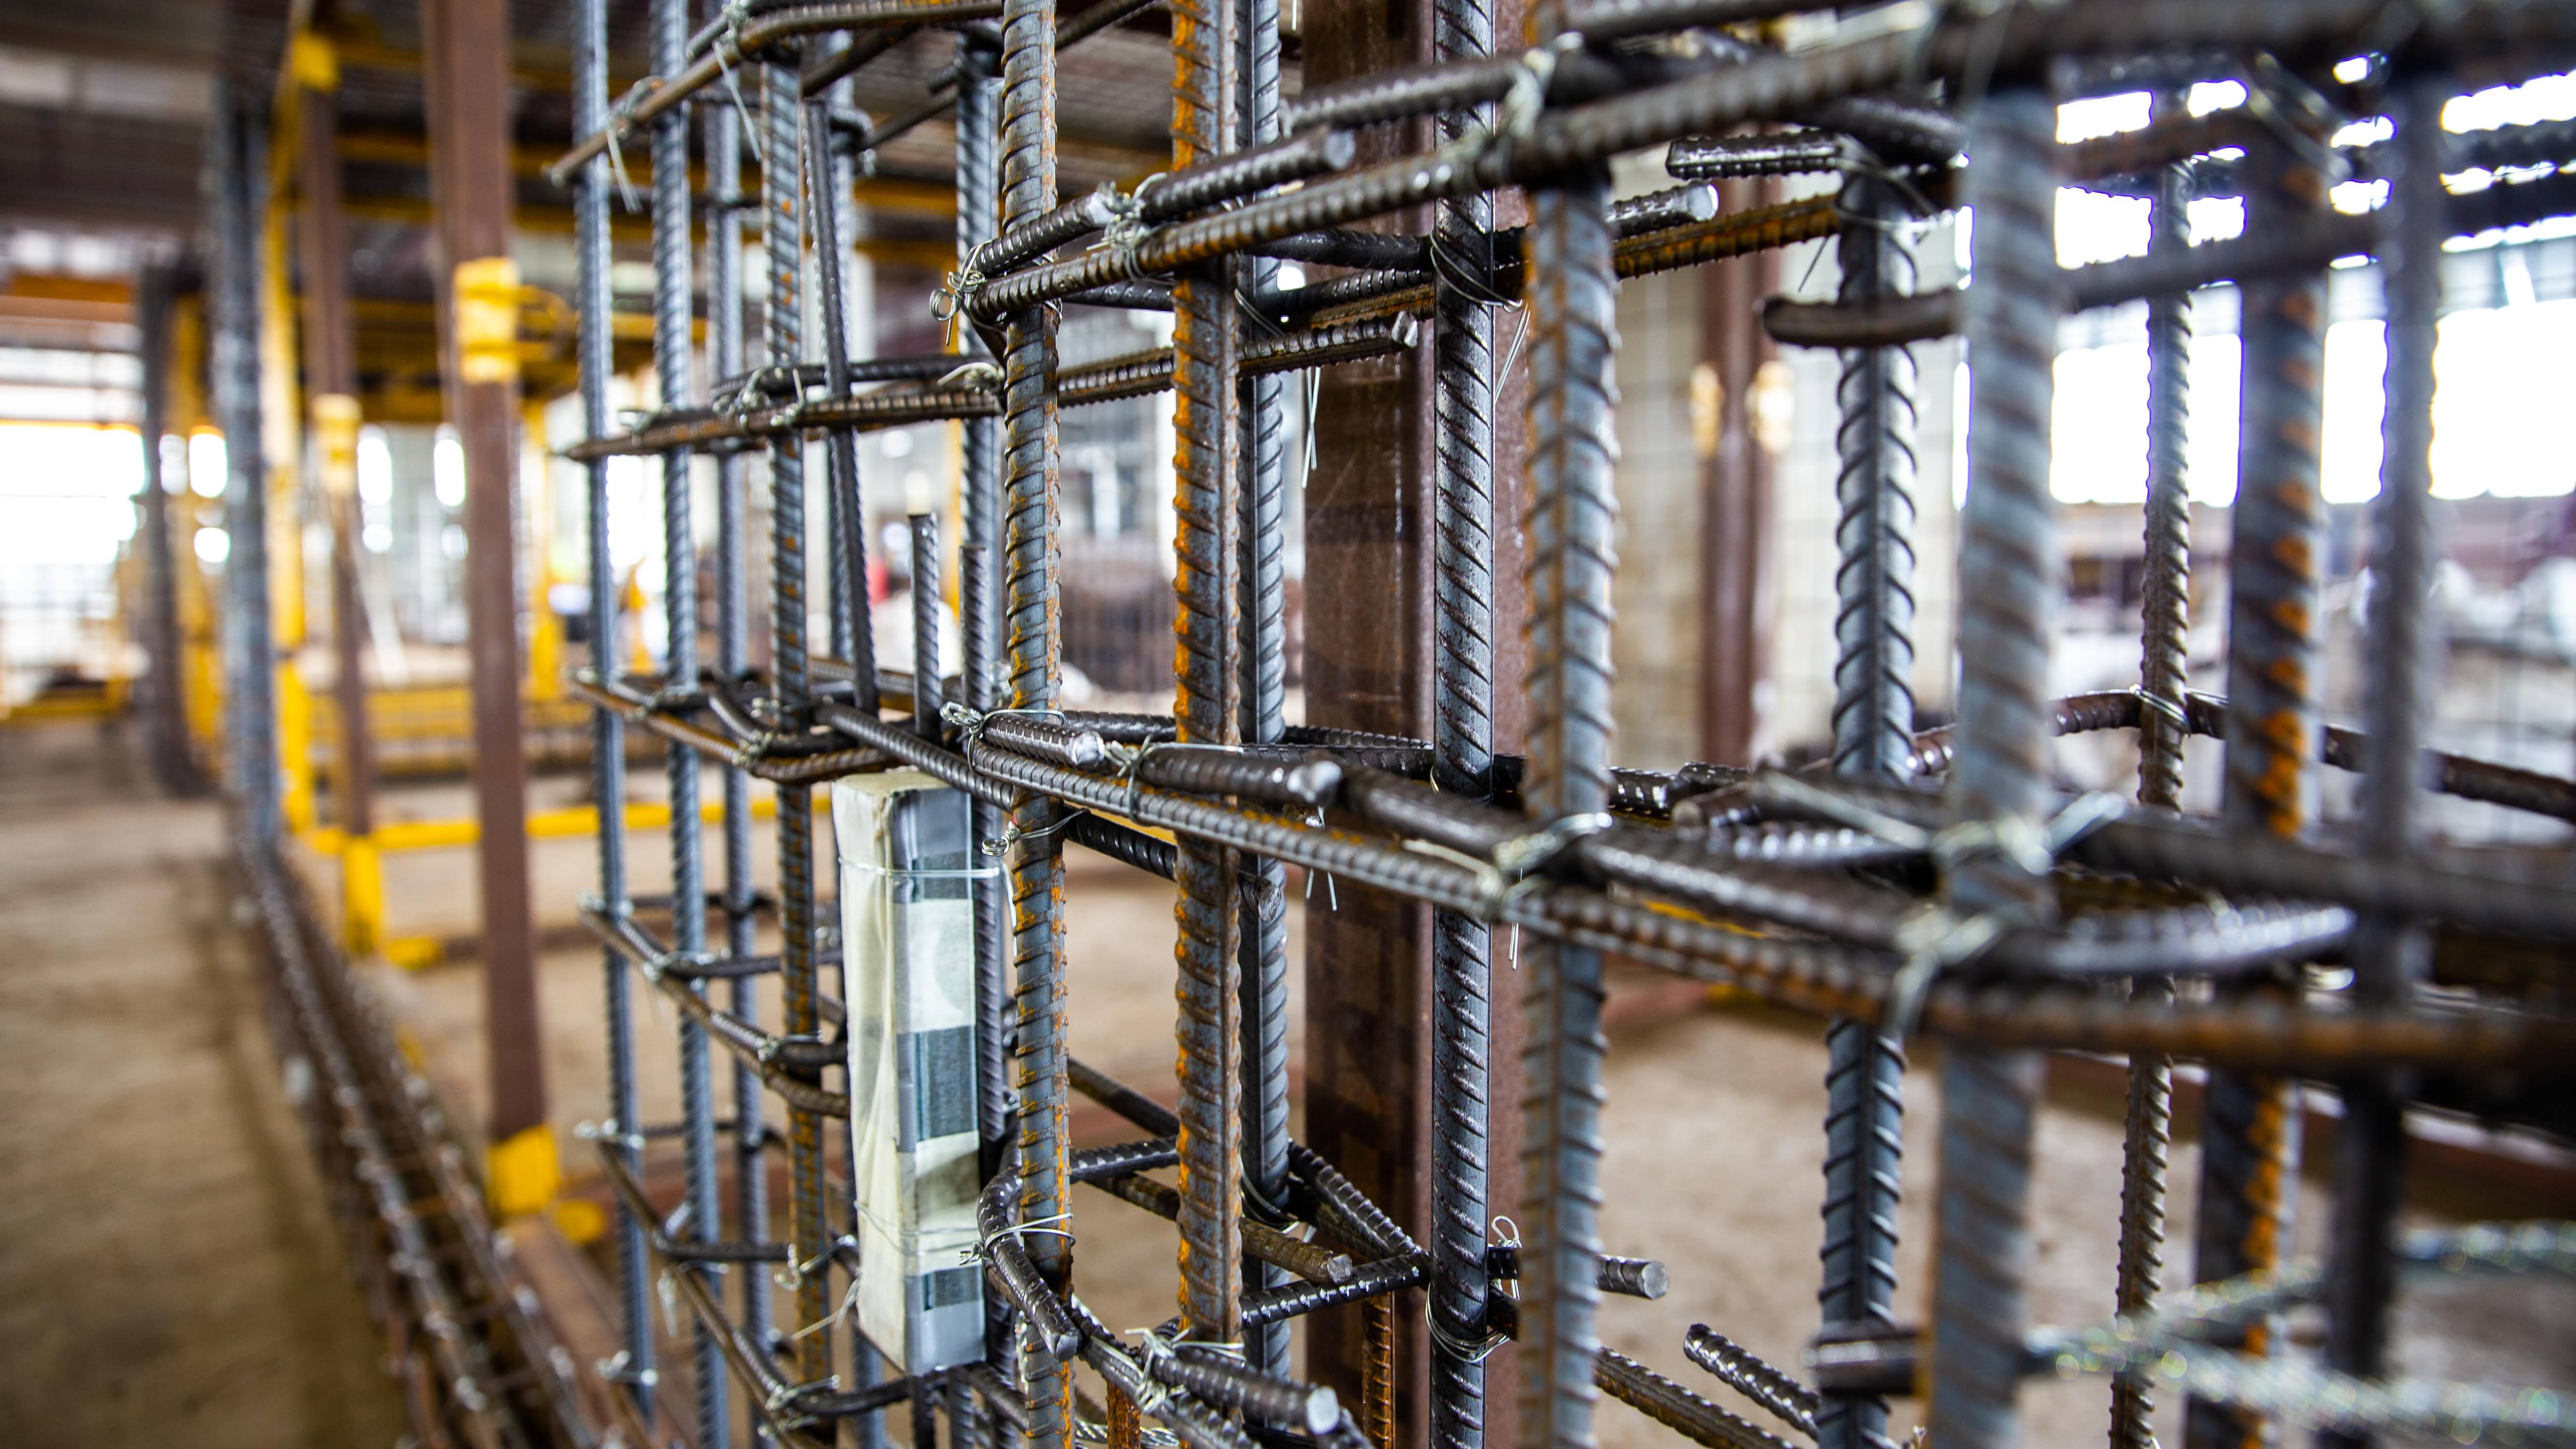 04 Assembly of rebar cages